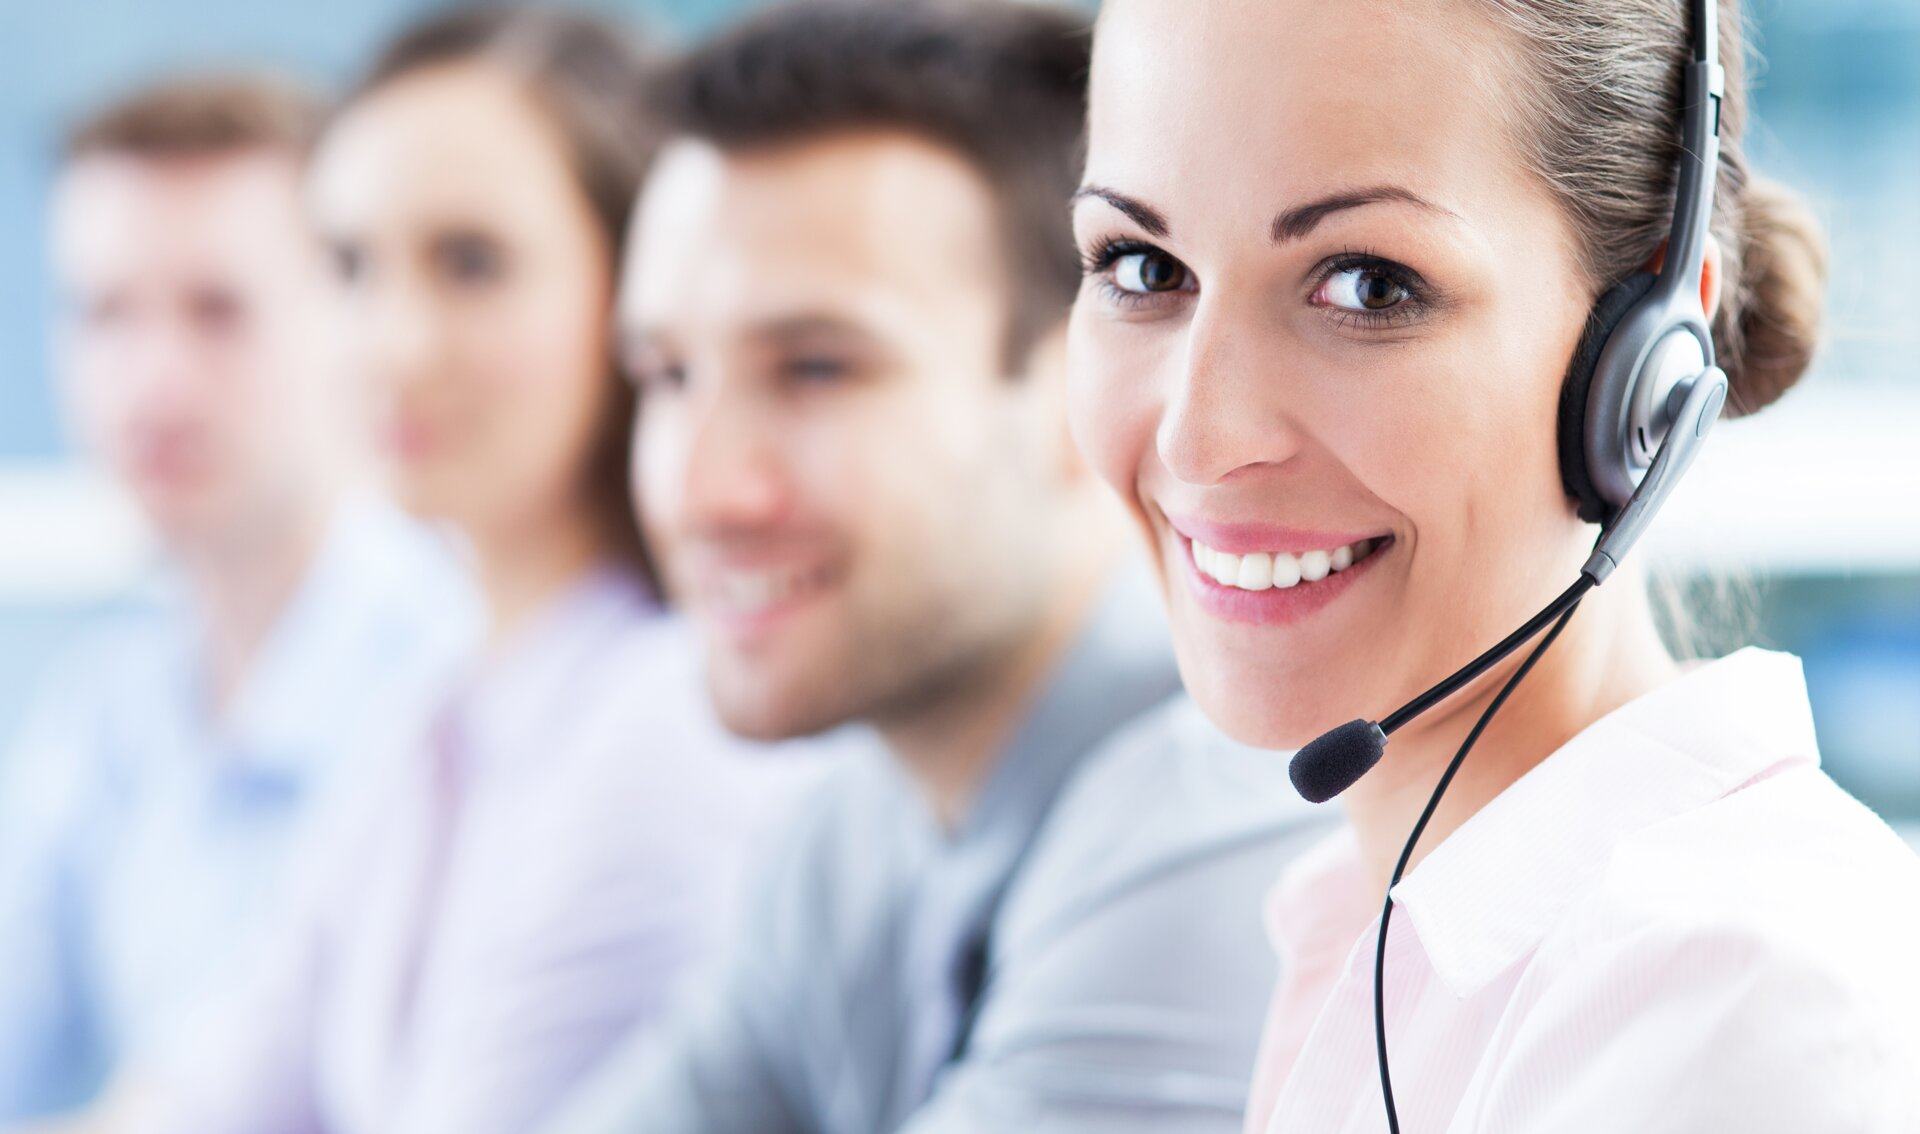 © © iStock-178570372_Fotograf_pikselstock PIKSEL (Call center team)